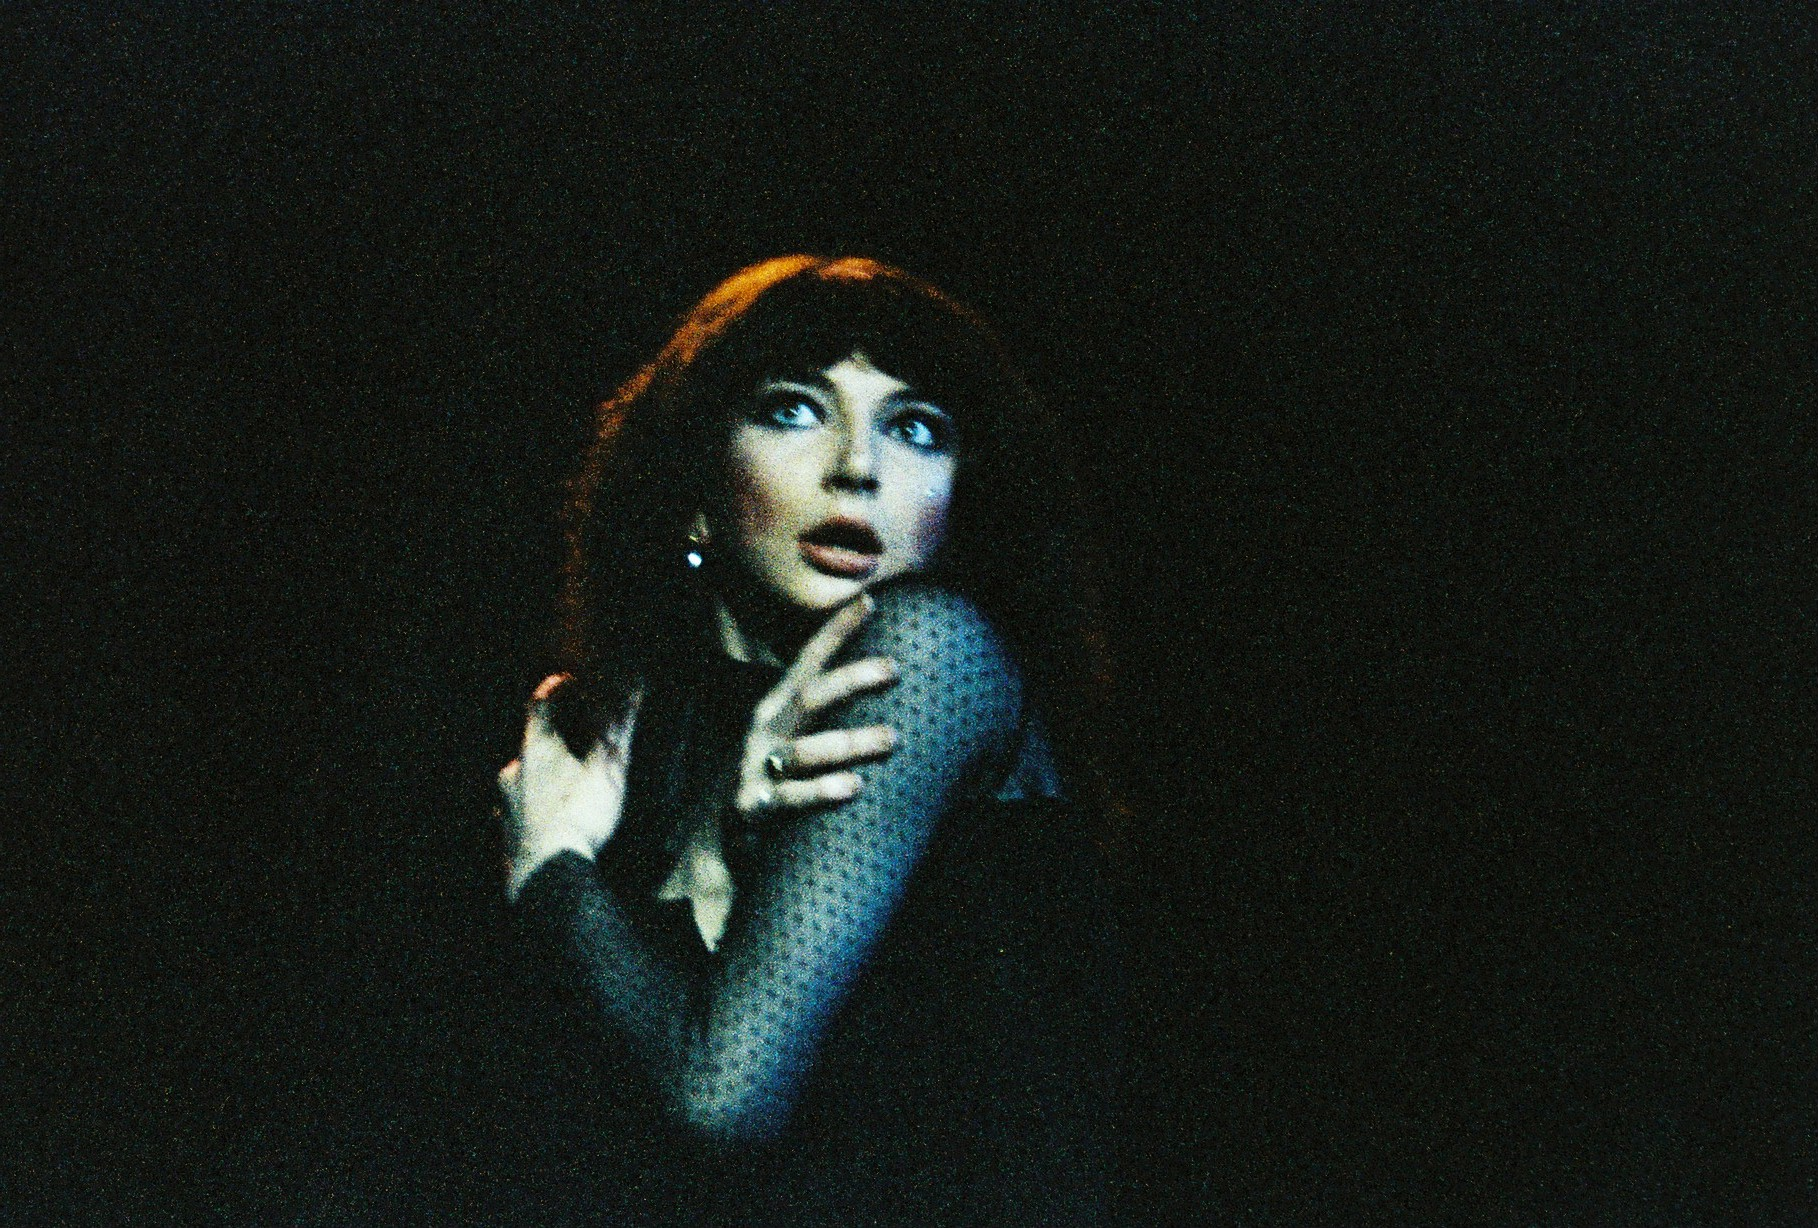 LONDON - 12th MAY: English singer Kate Bush performs live on stage at Hammersmith Odeon in London on the penultimate date of